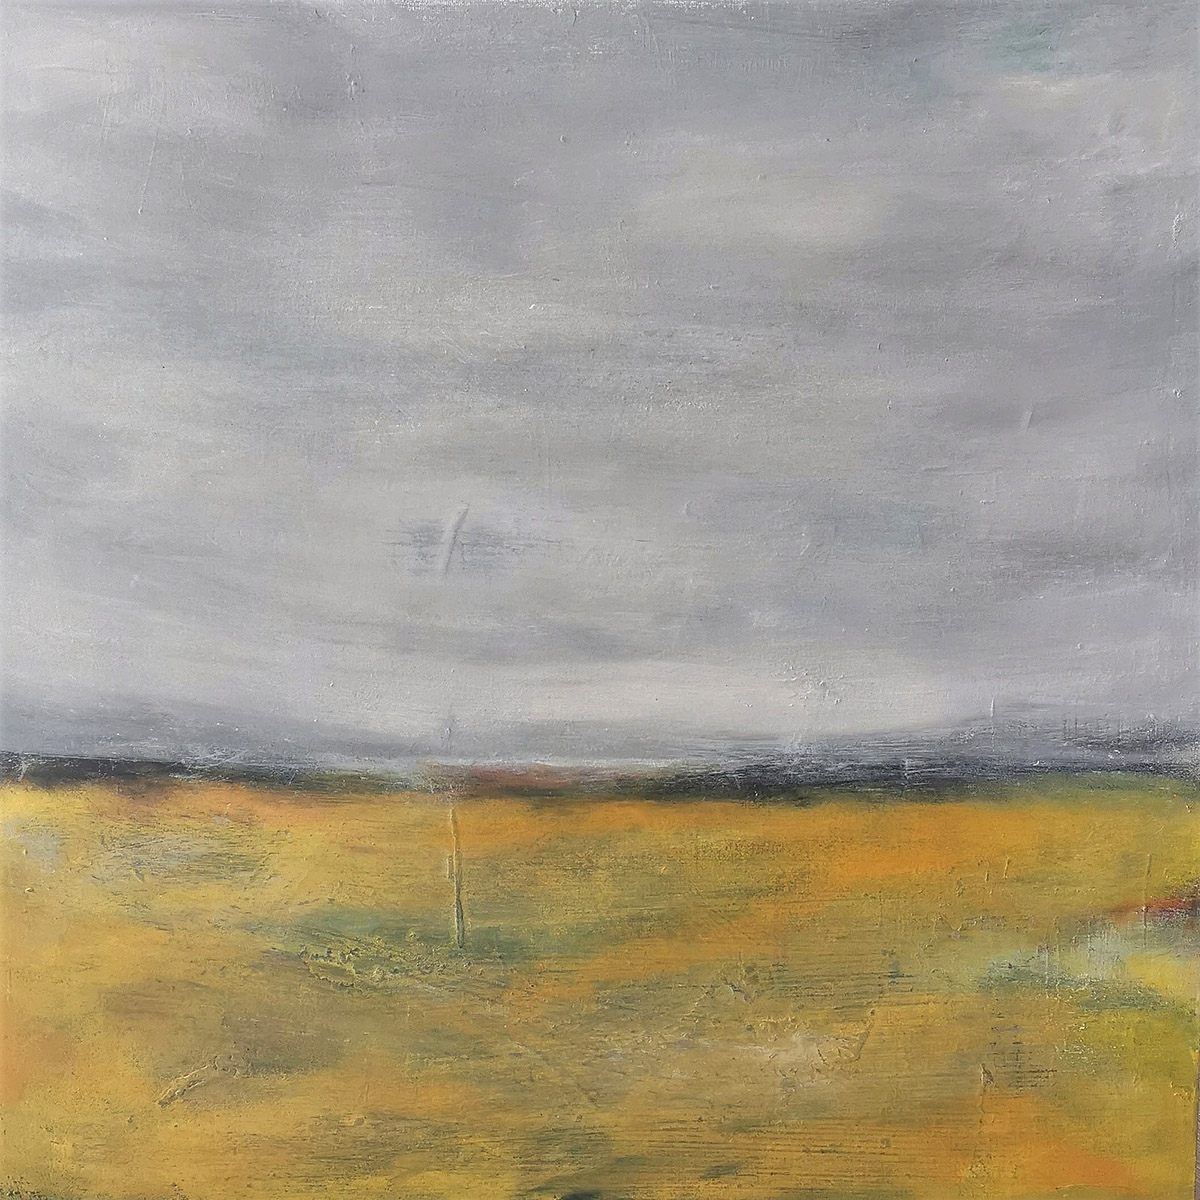 Kirstin Heggie, 'Over the Yellow Fields', acrylic on board